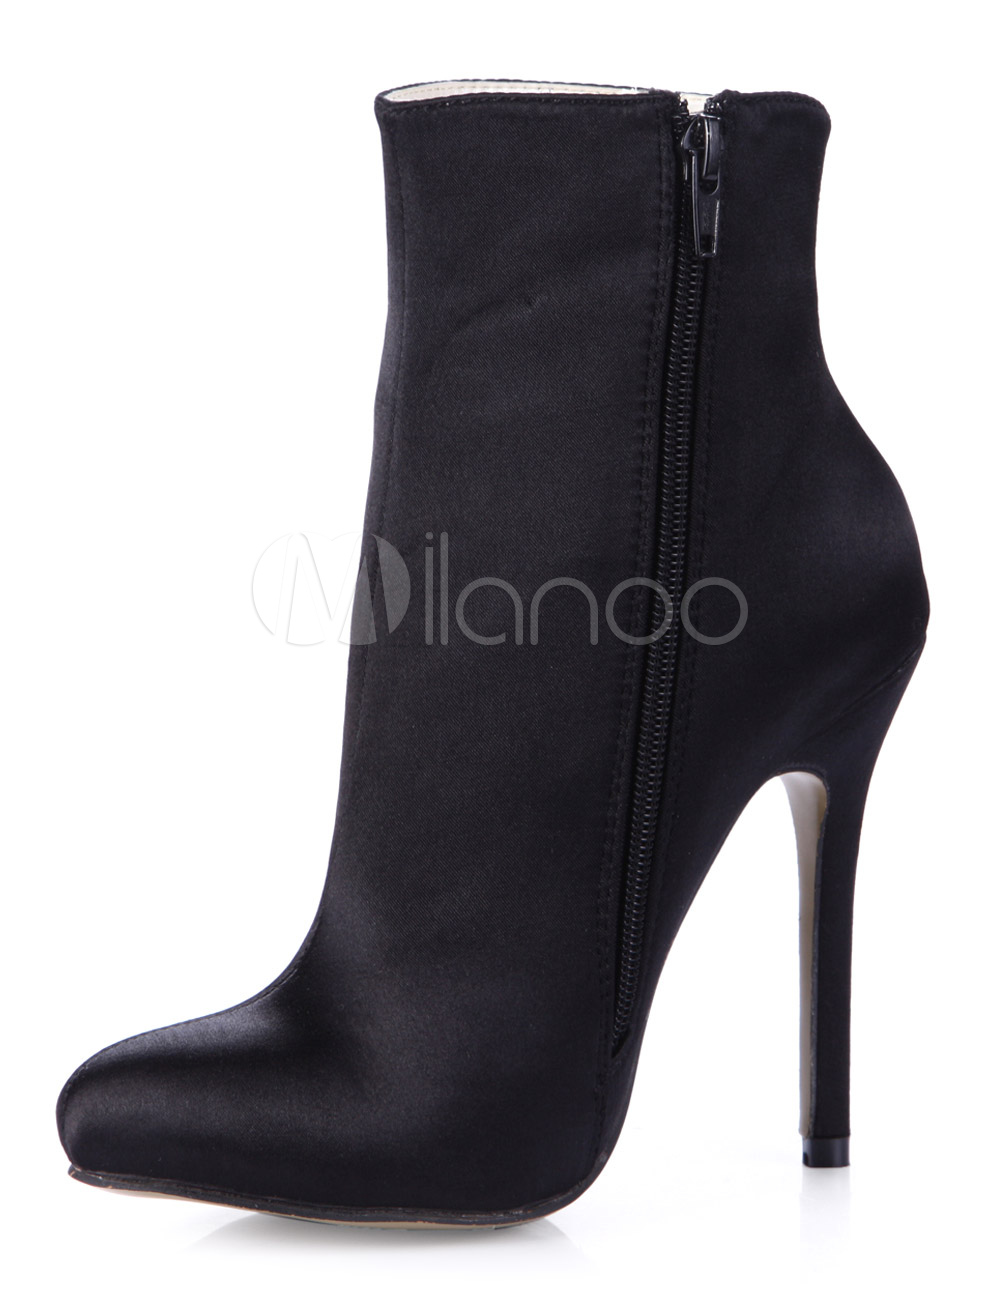 Black Pointed Toe Silk And Satin Fabulous High Heel Booties For Woman